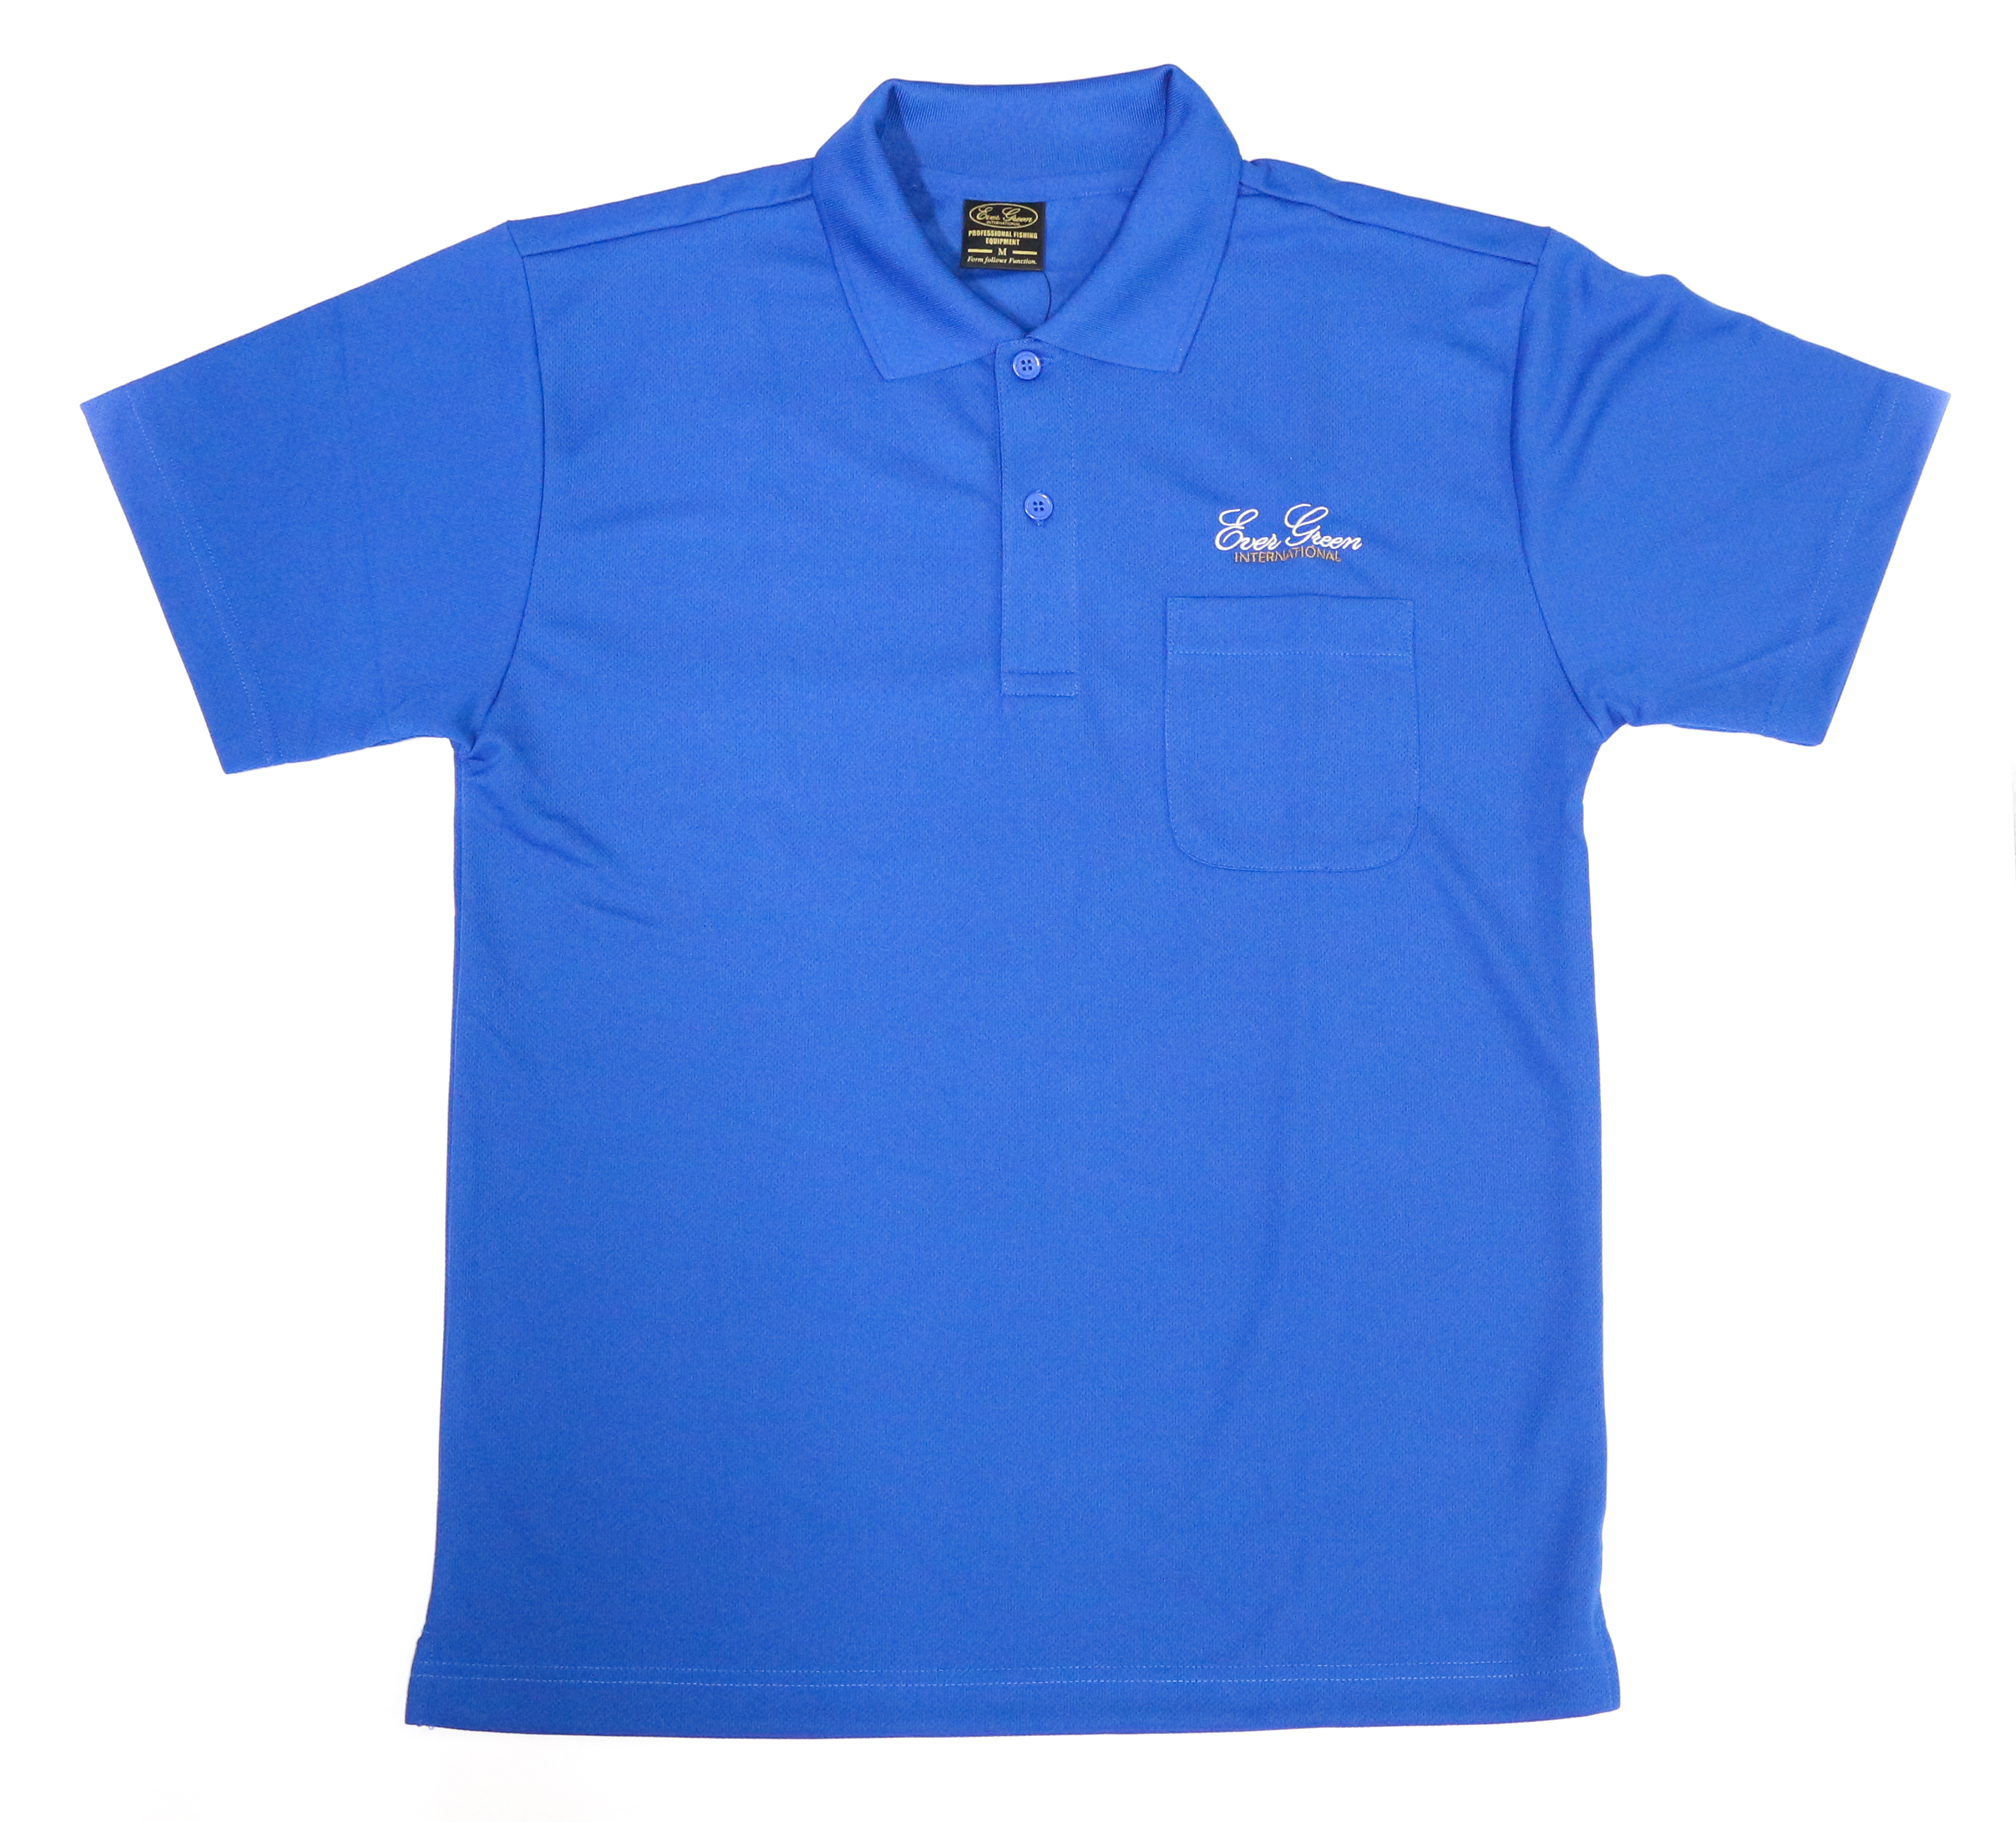 Evergreen Polo Shirt Dry Fit Short Sleeve Poseidon Type B Size M Blue (5794)